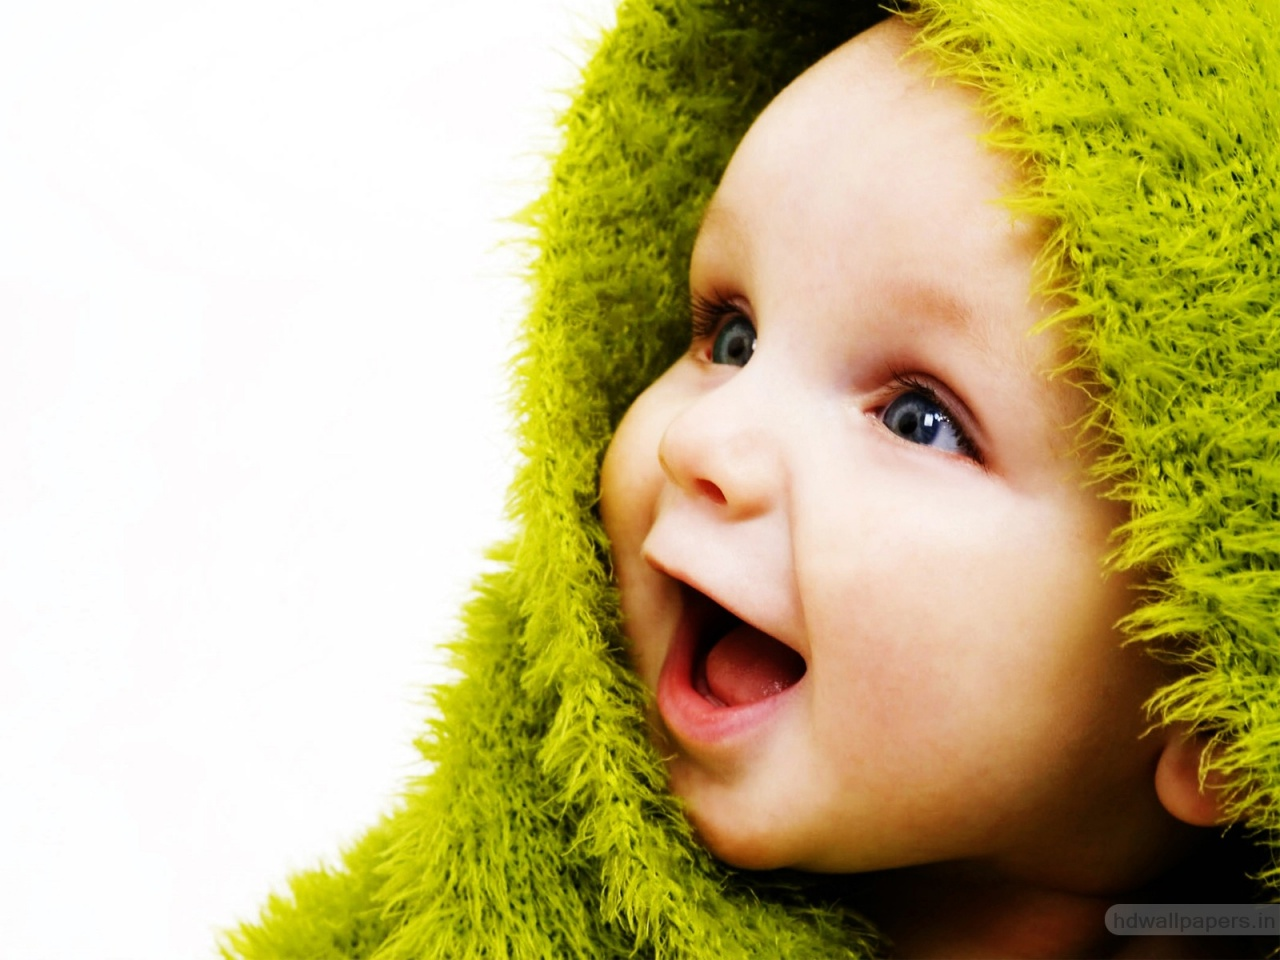 little cute baby wallpapers in jpg format for free download